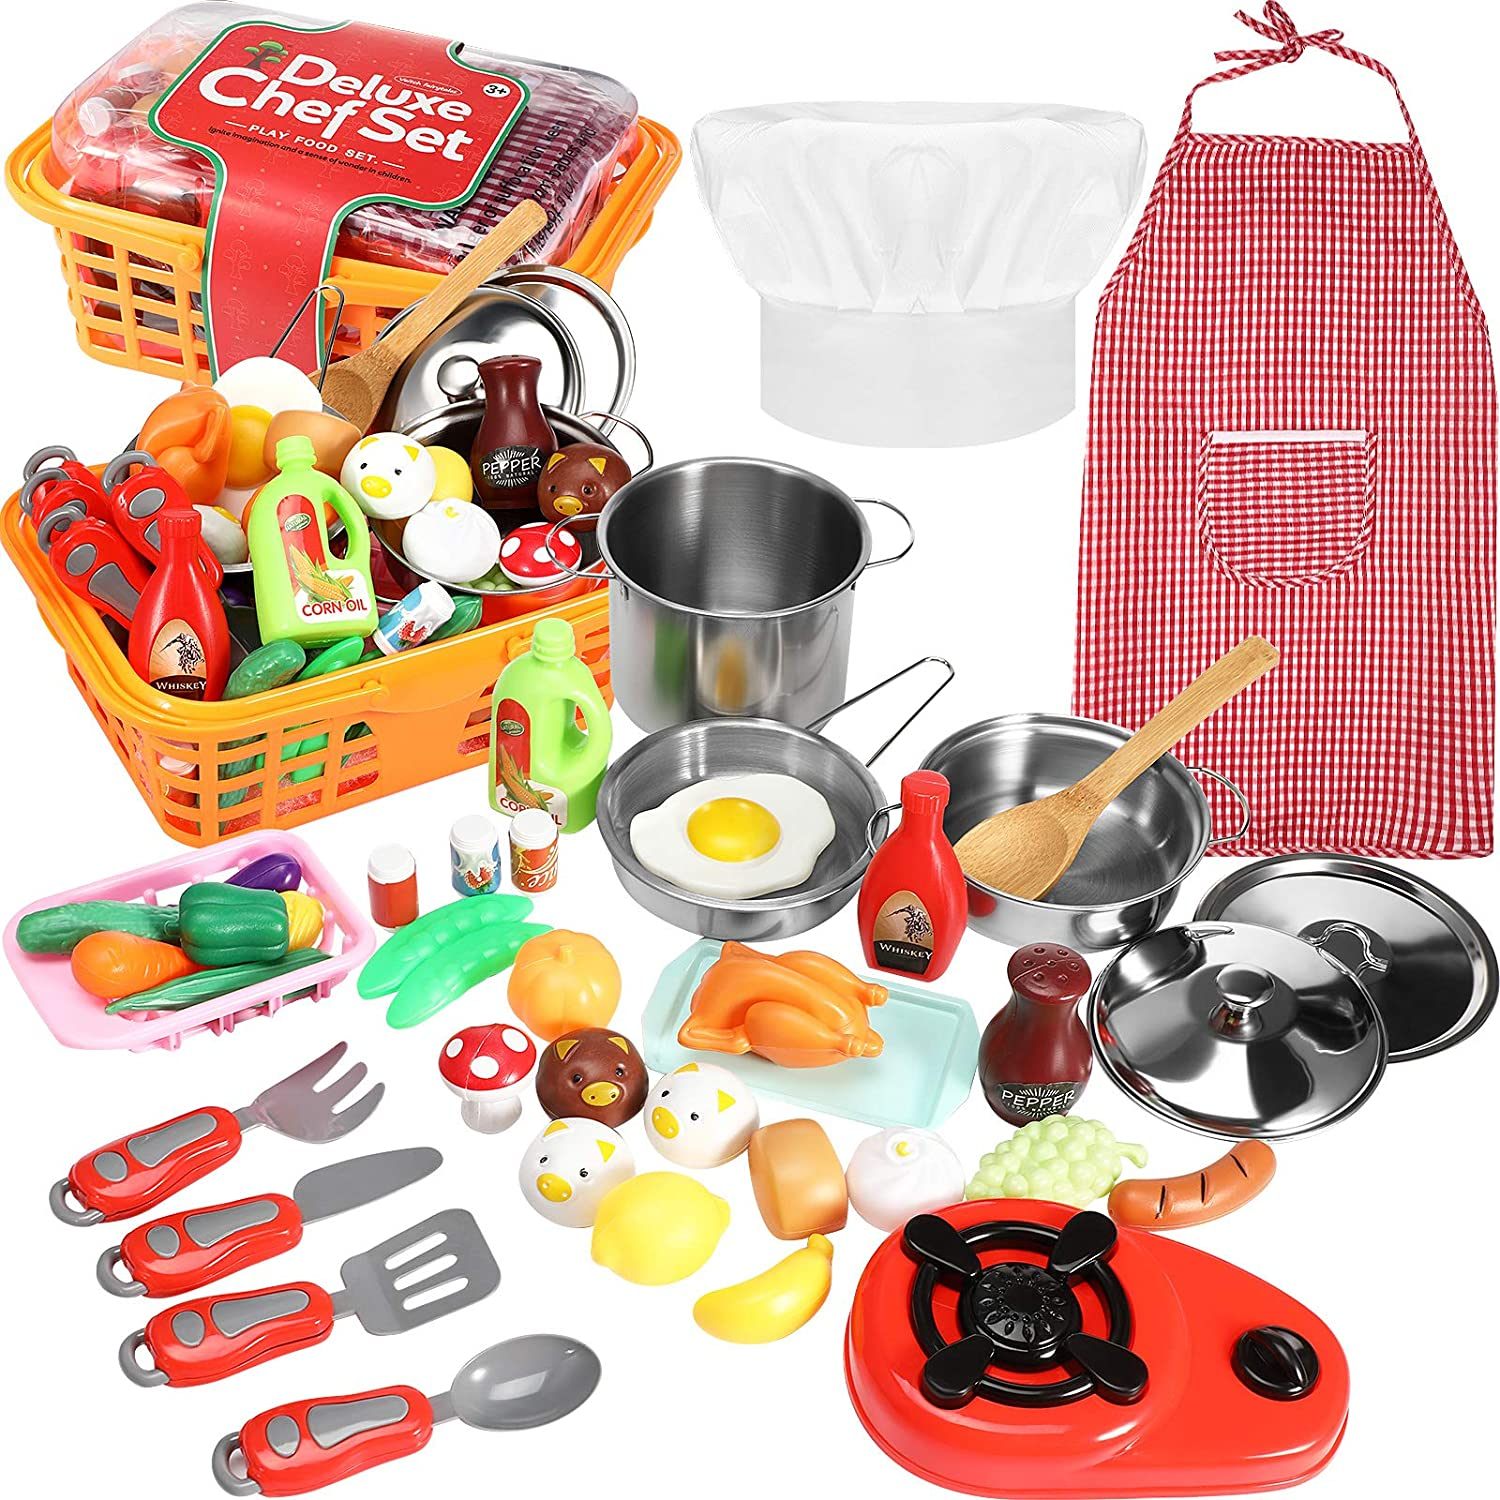 42 Pieces Kitchen Pretend Cookware Play, Mini Kitchen Tools Play Set Includes Cooking Utensils Stainless Steel Pots and Pans Set Apron Chef Hat Plastic Food Vegetables Fruits for DIY Handmade